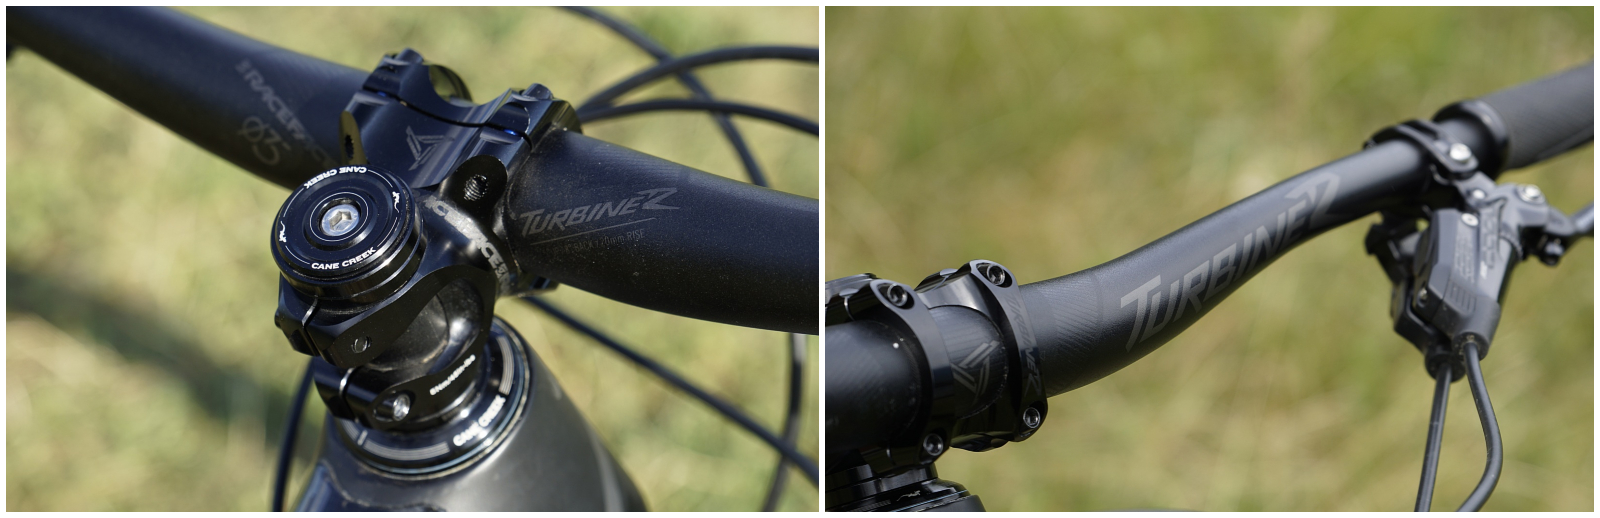 1a73b390a5d Another characteristic of the SBG is the short stem, in this case a 40mm  RaceFace Turbine. From the same series is the great 800mm Sweep handlebar,  ...